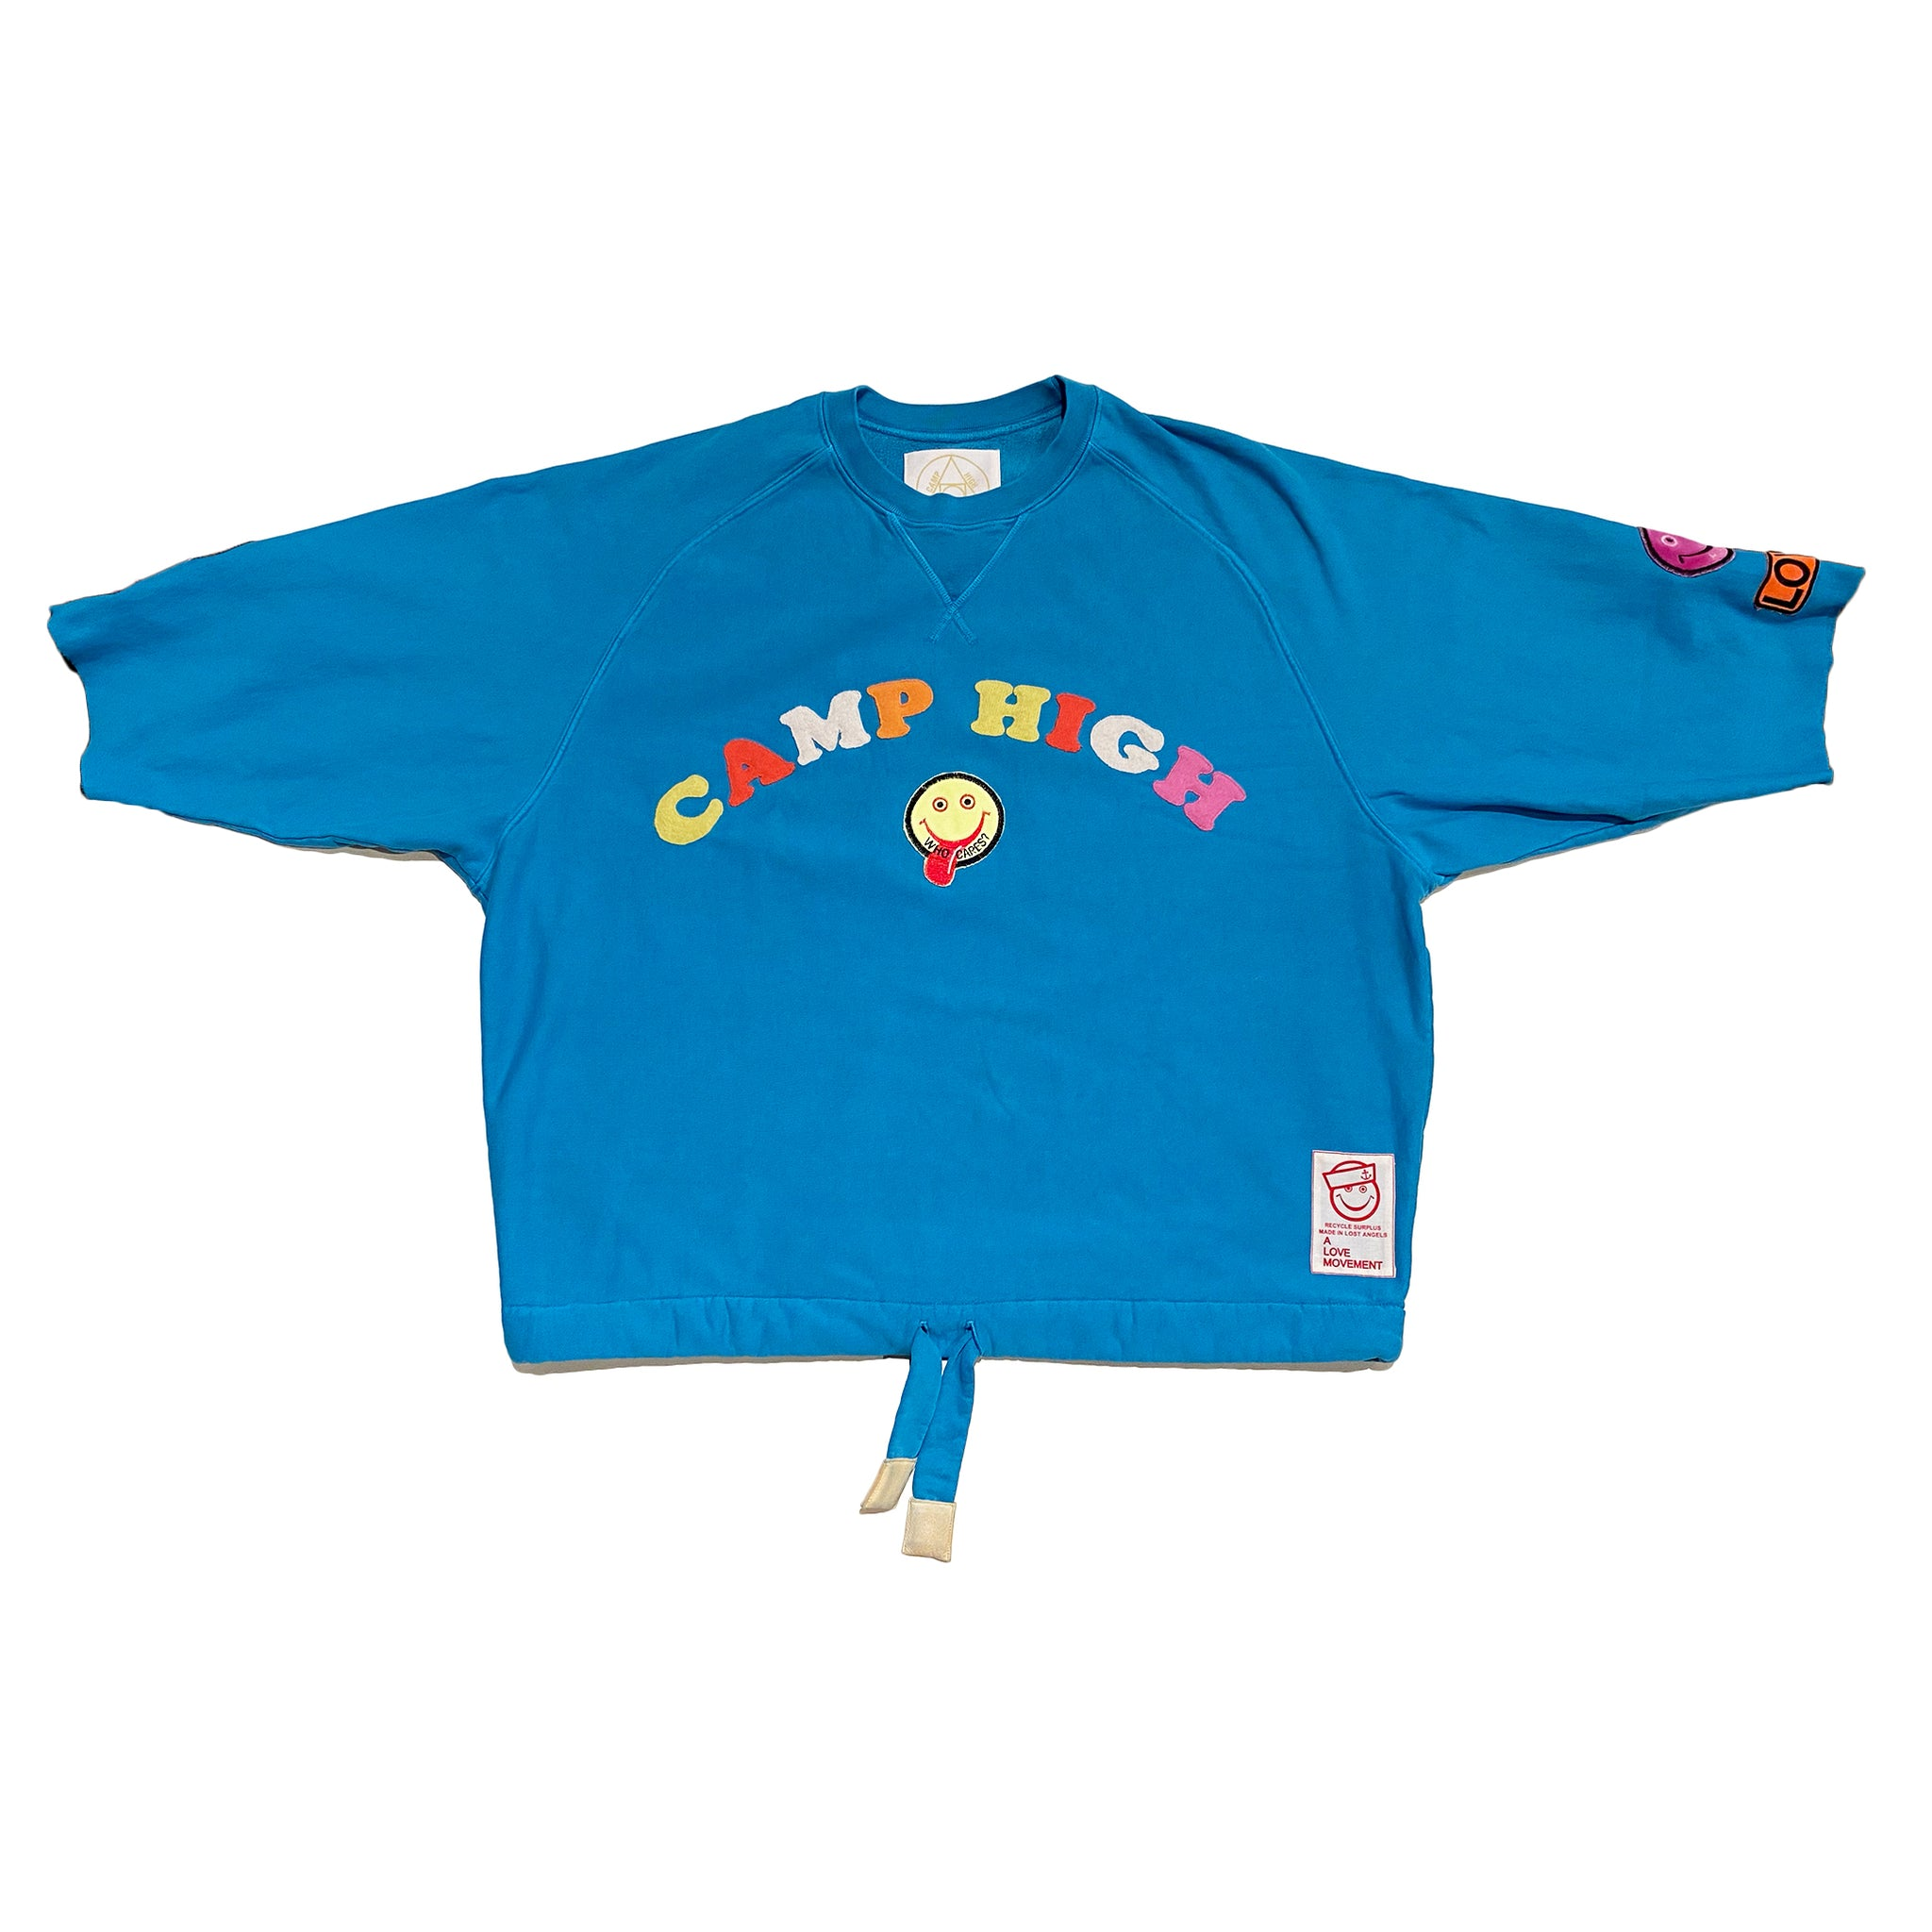 "ALM x Camp High Cozy Crewneck ""Stoned Sun"" Blue - A LOVE MOVEMENT"